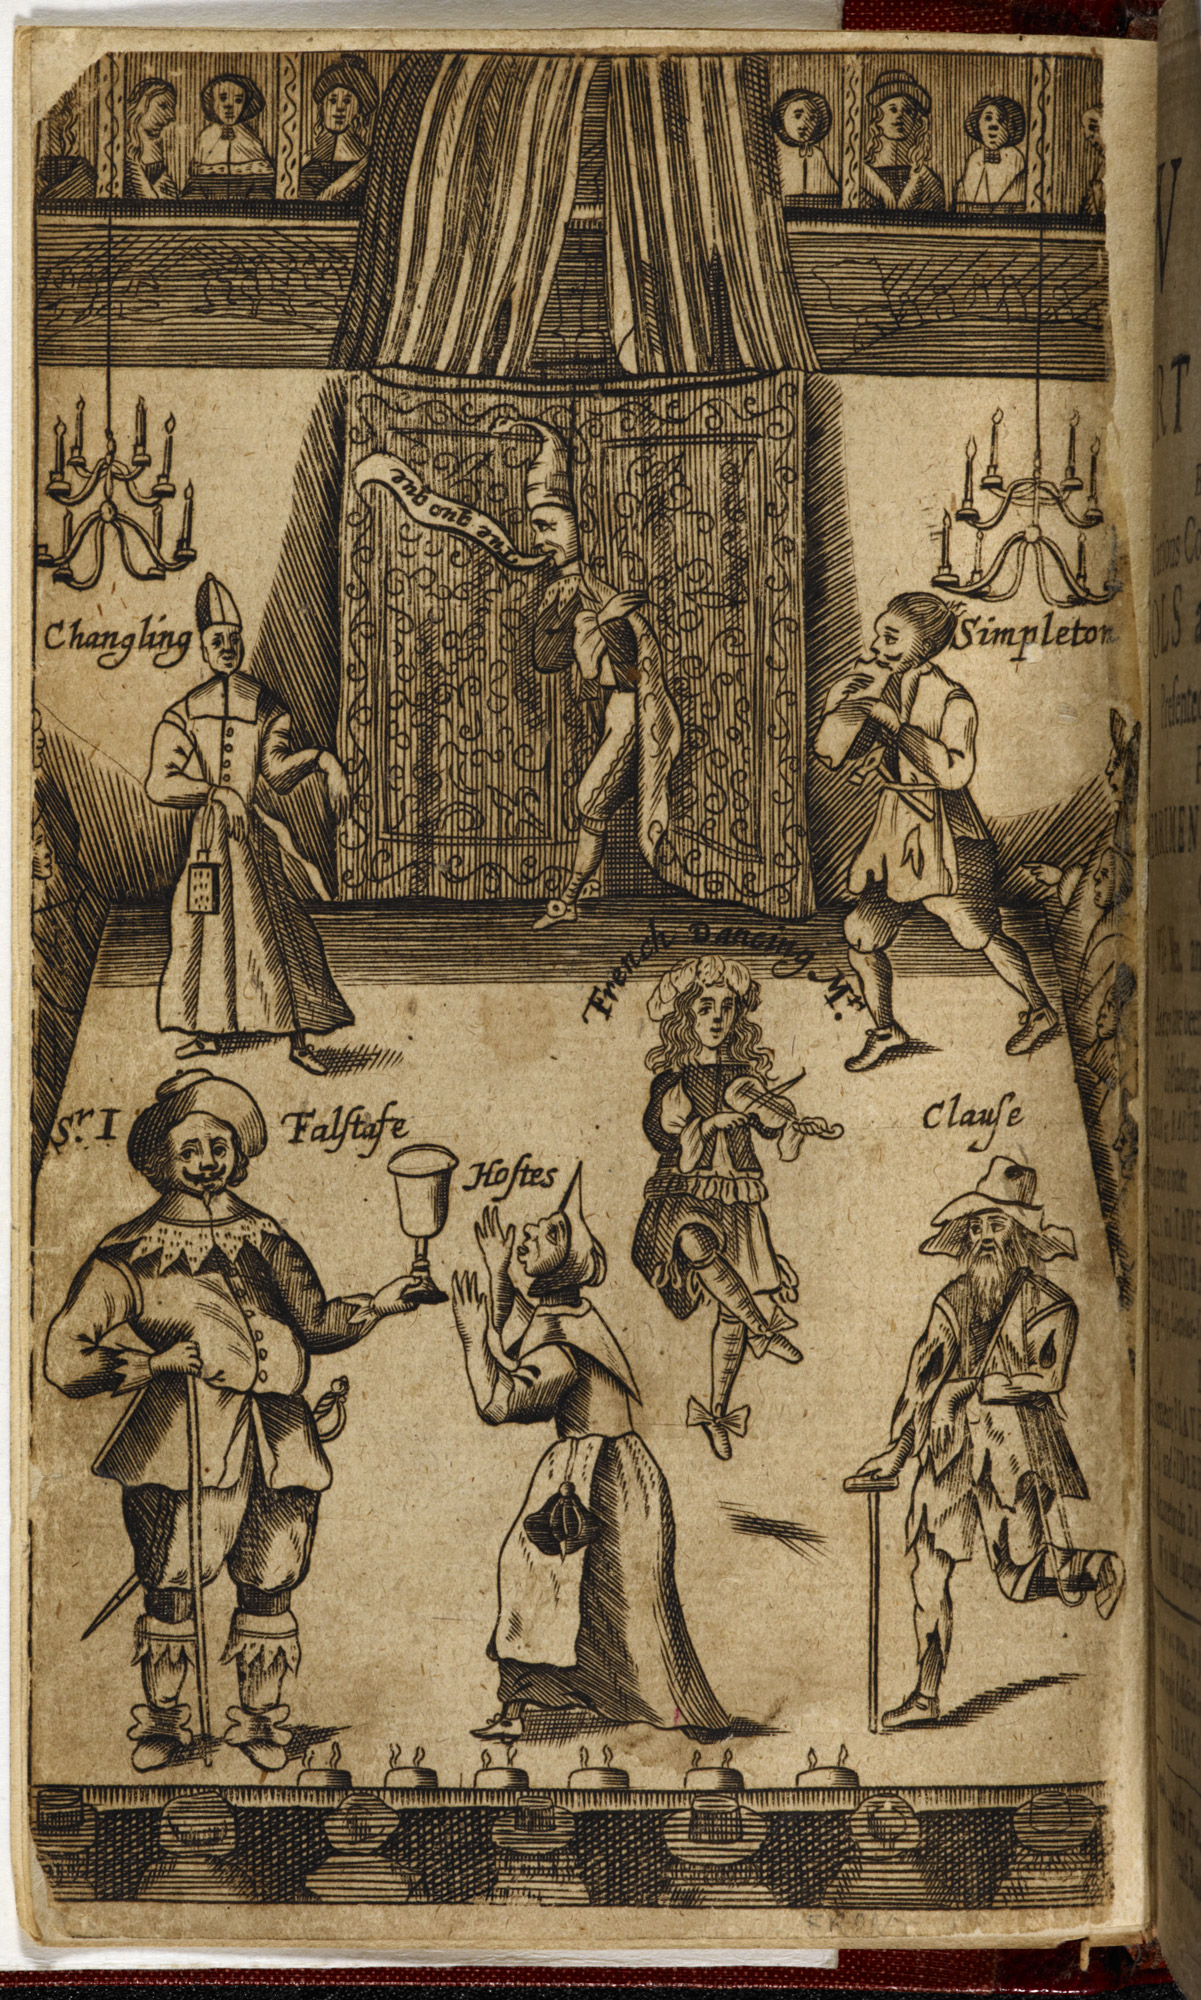 Frontispiece to The Wits, showing chandelier